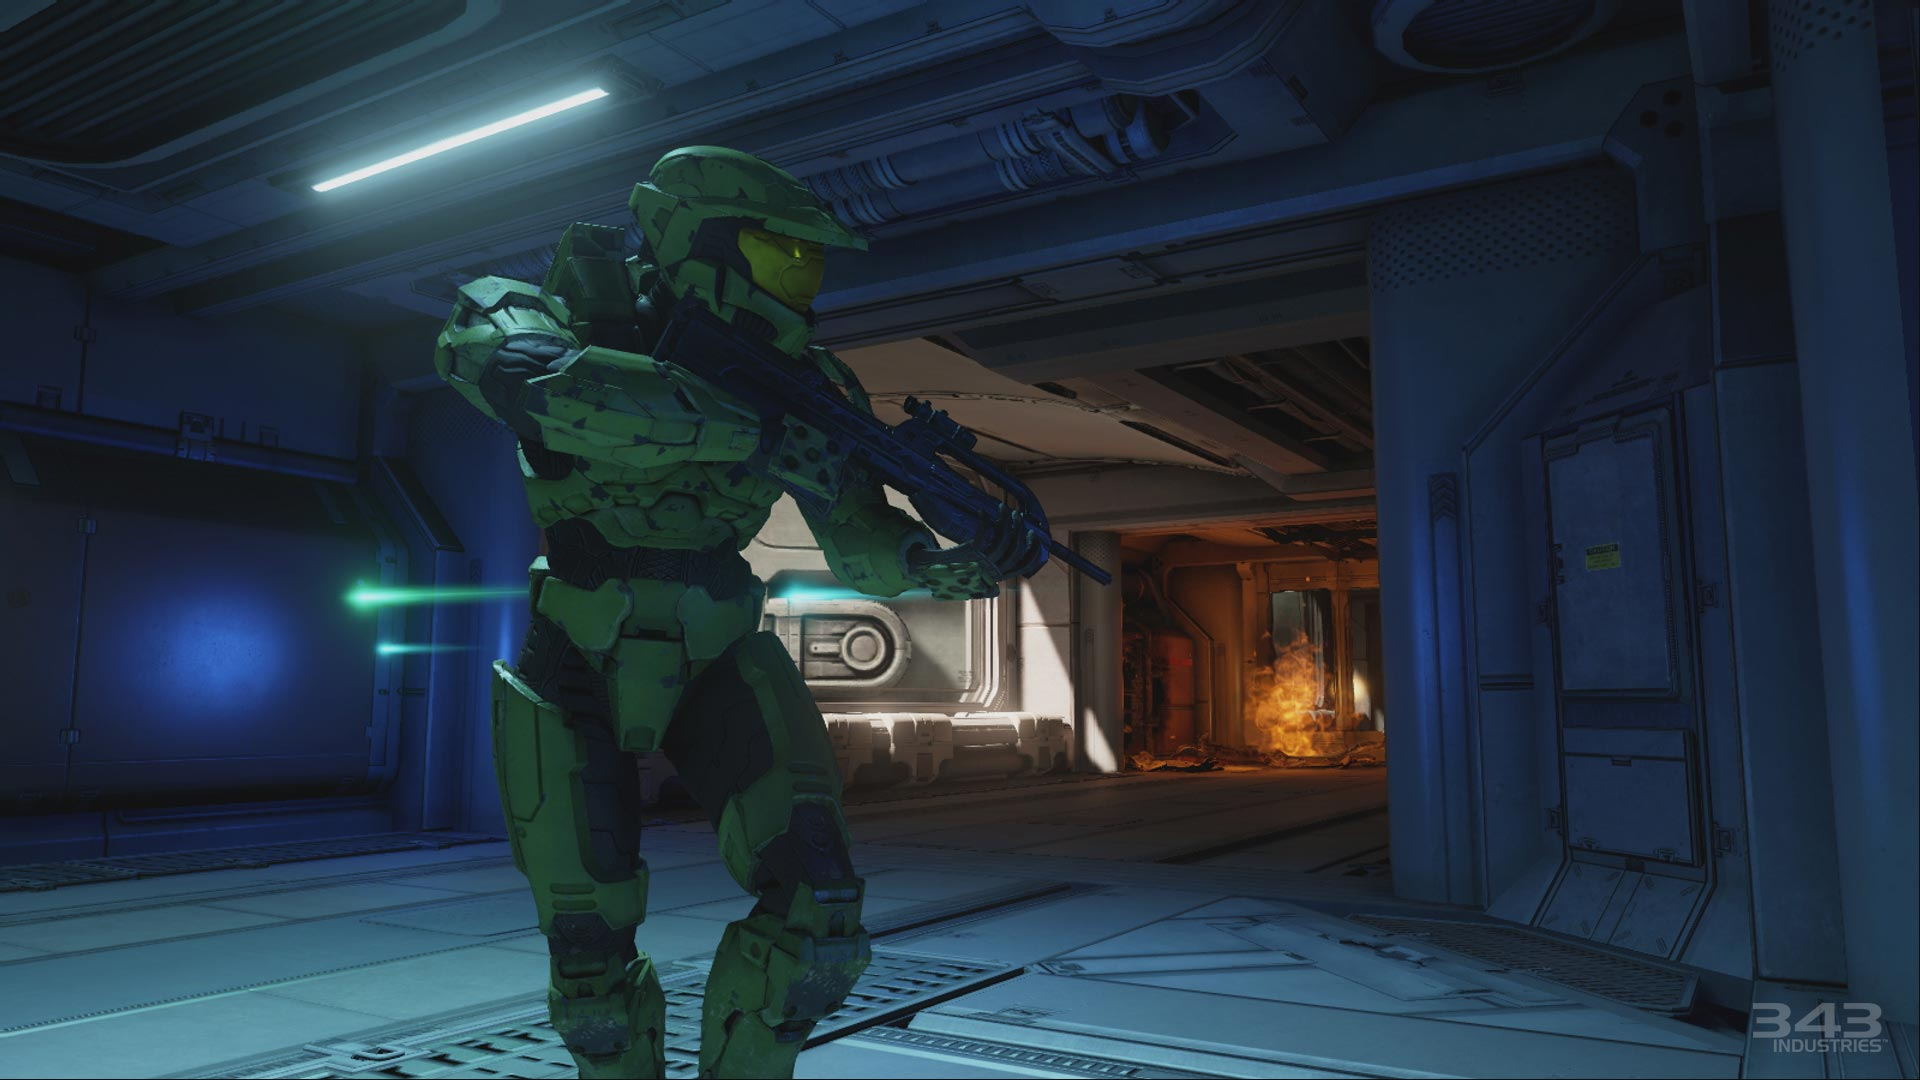 halo matchmaking issues fix